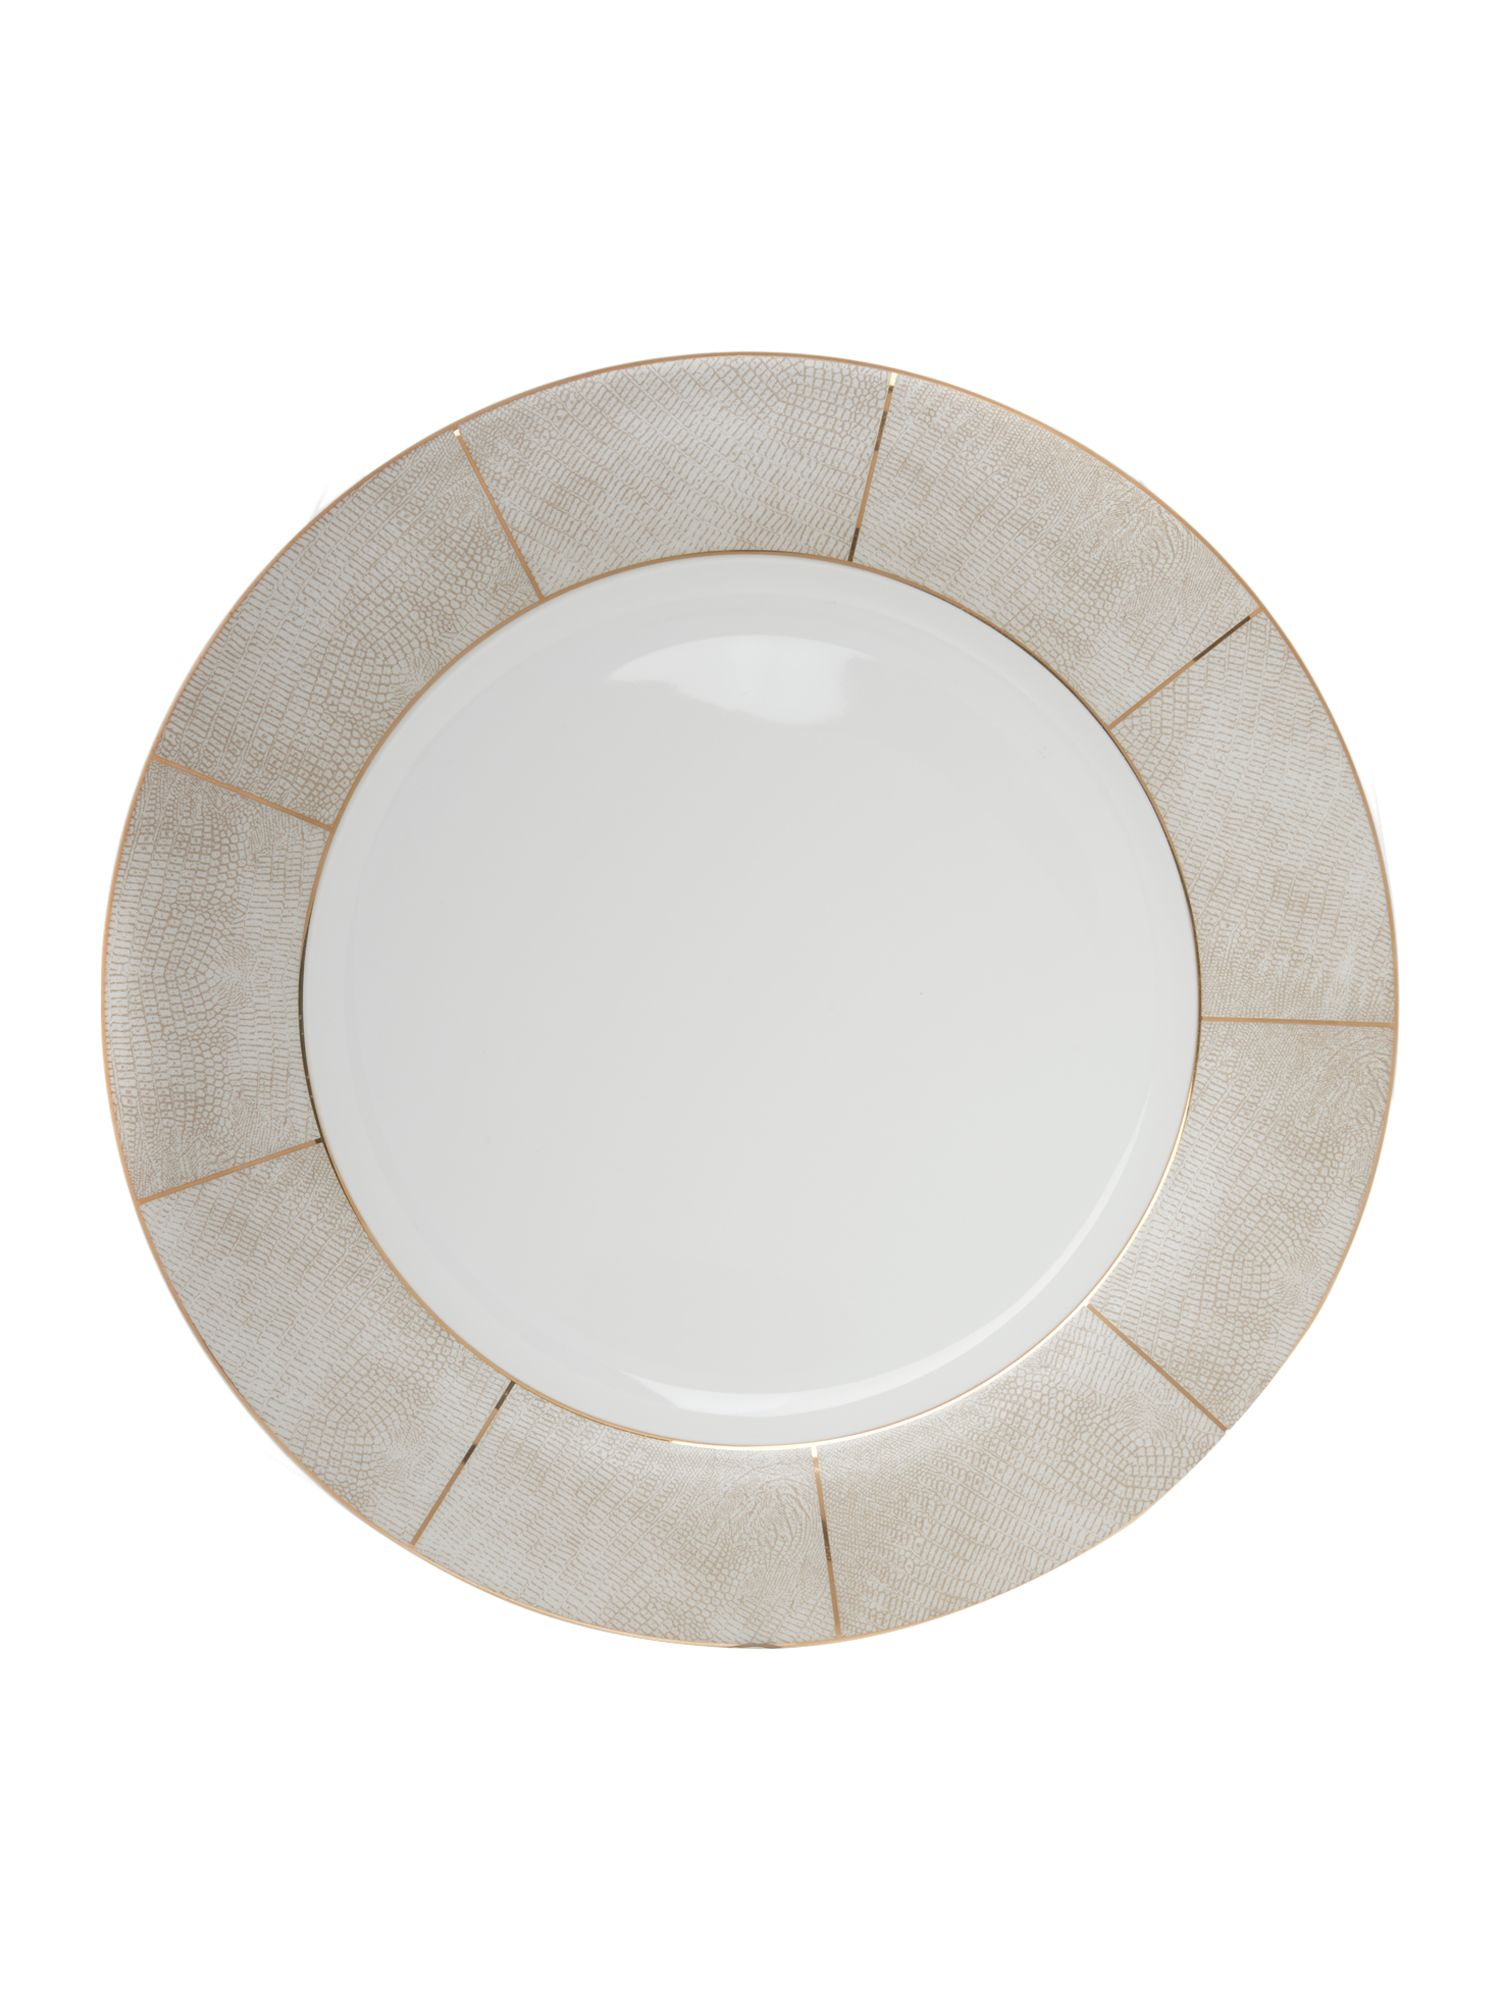 Casa Couture Casa Couture Luxe Dinner Plate